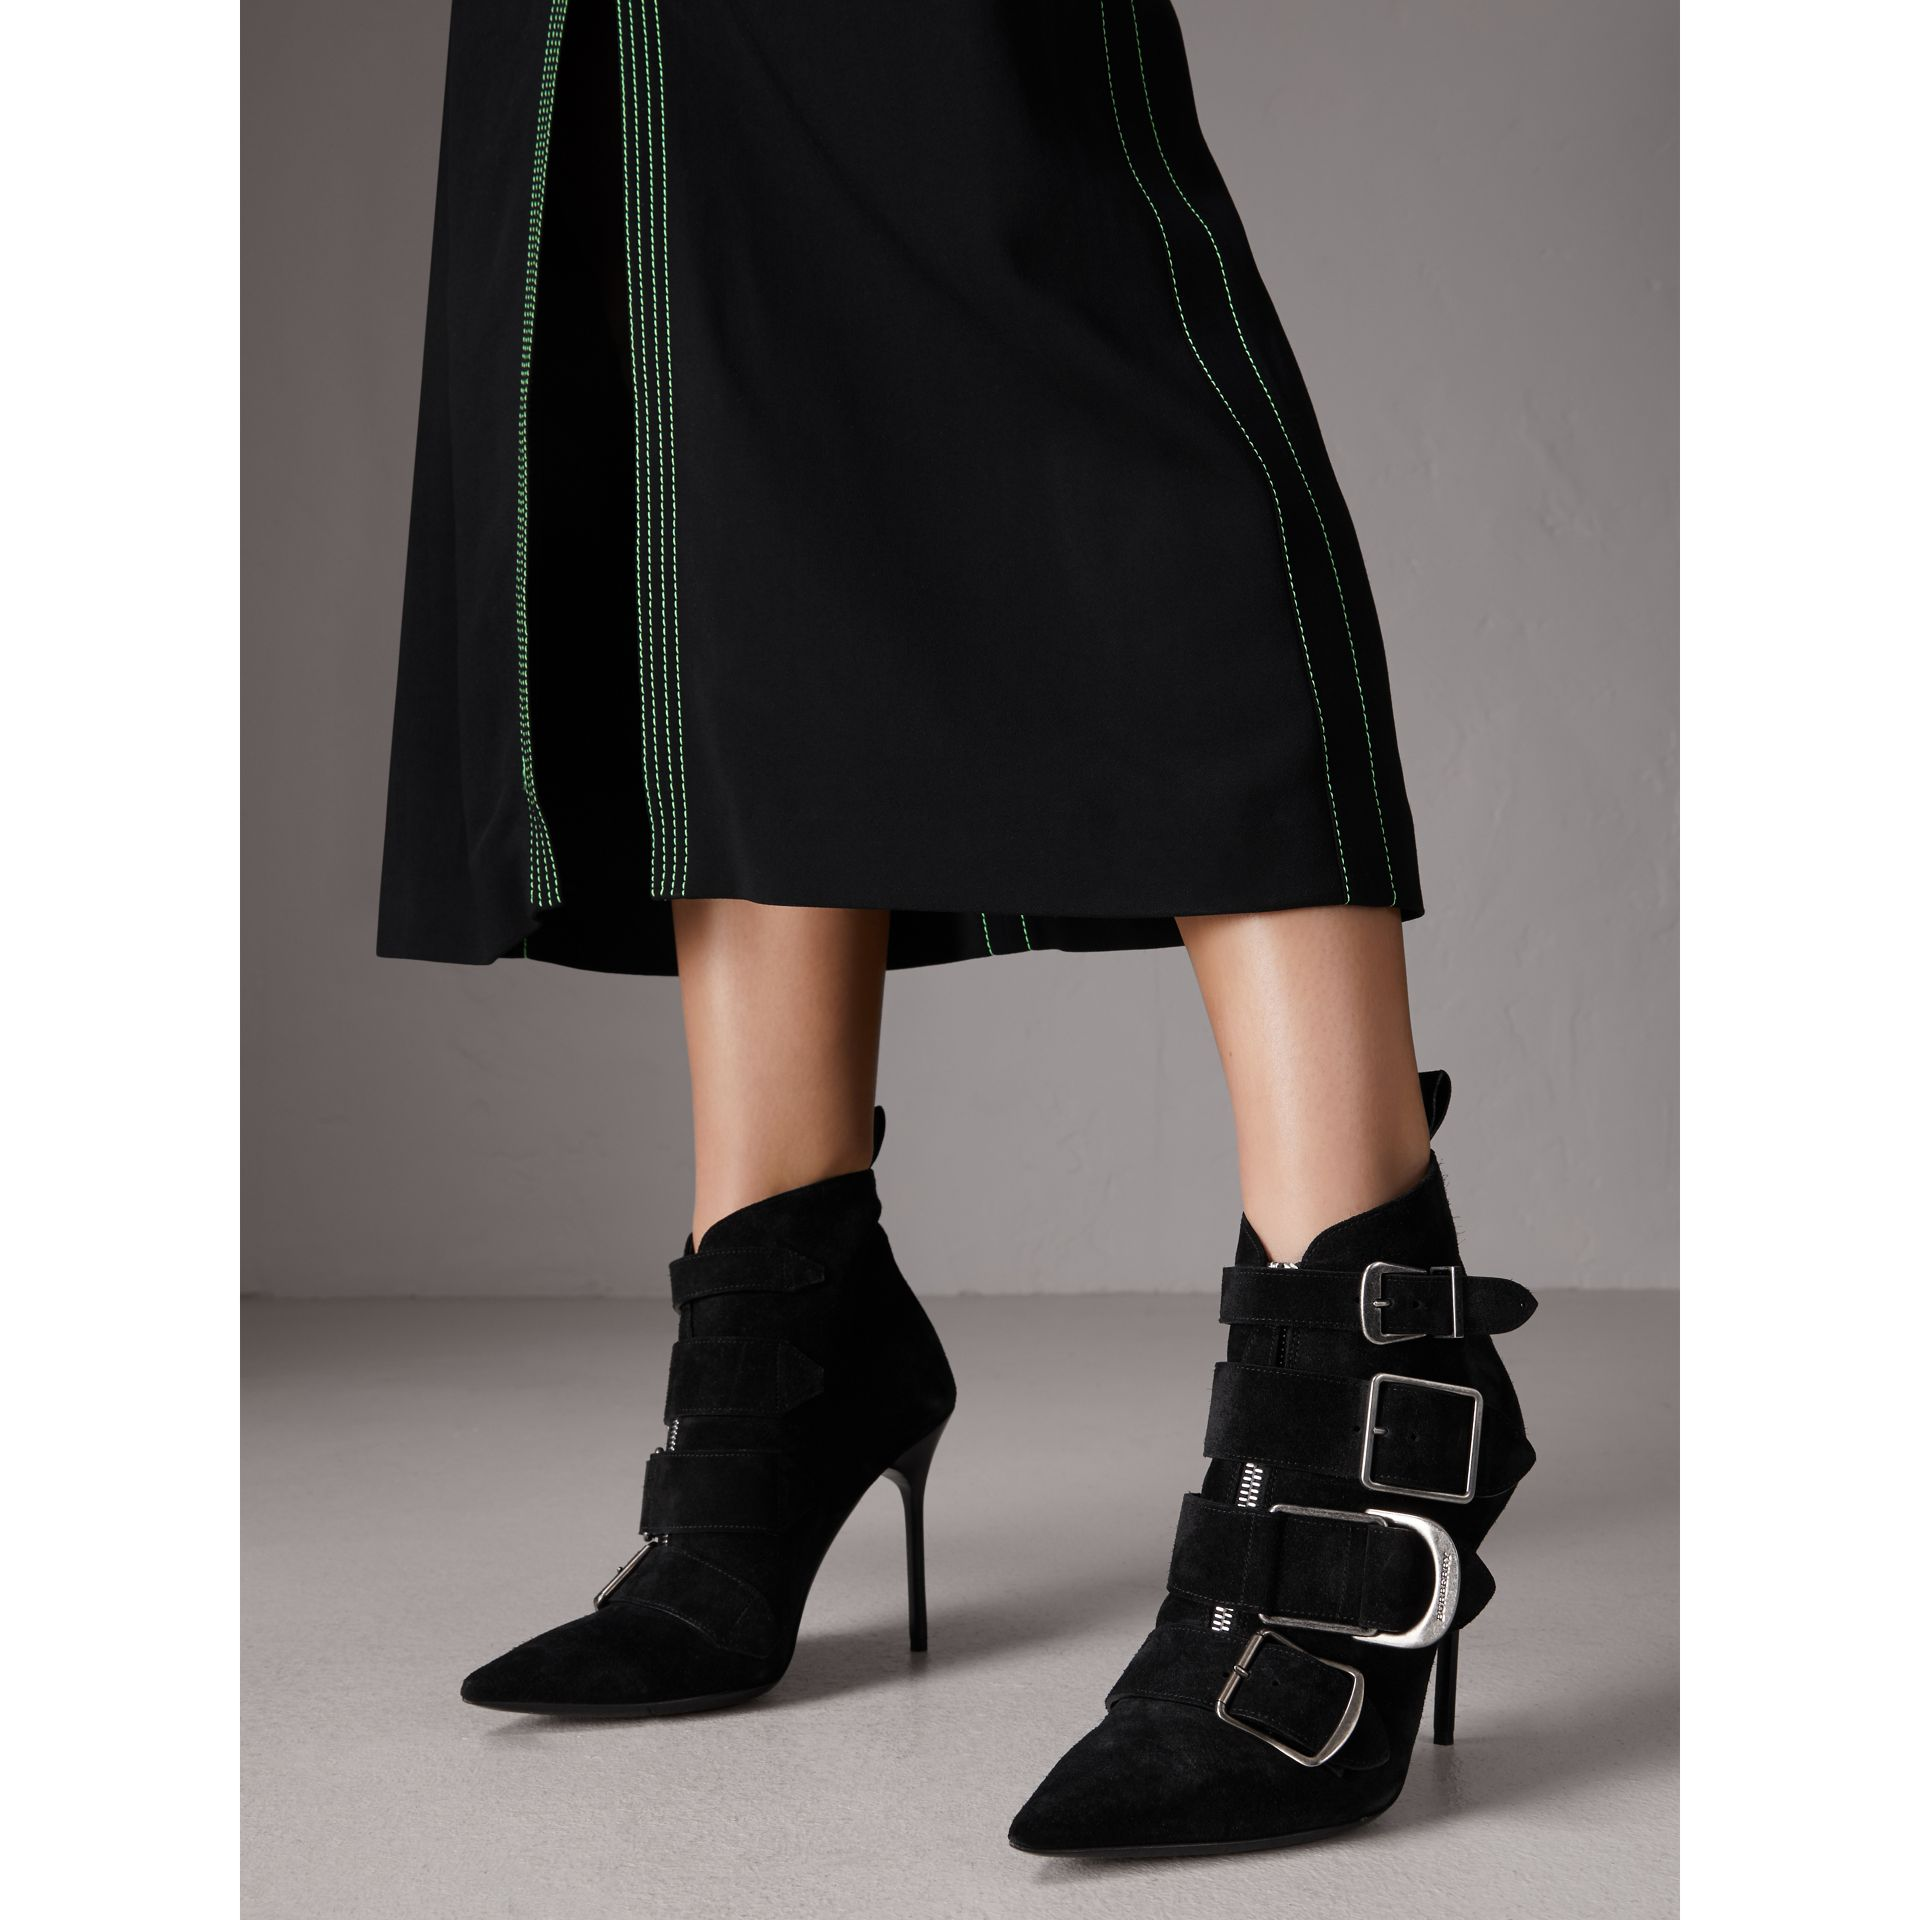 Buckle Detail Suede Ankle Boots in Black - Women | Burberry Canada - gallery image 2